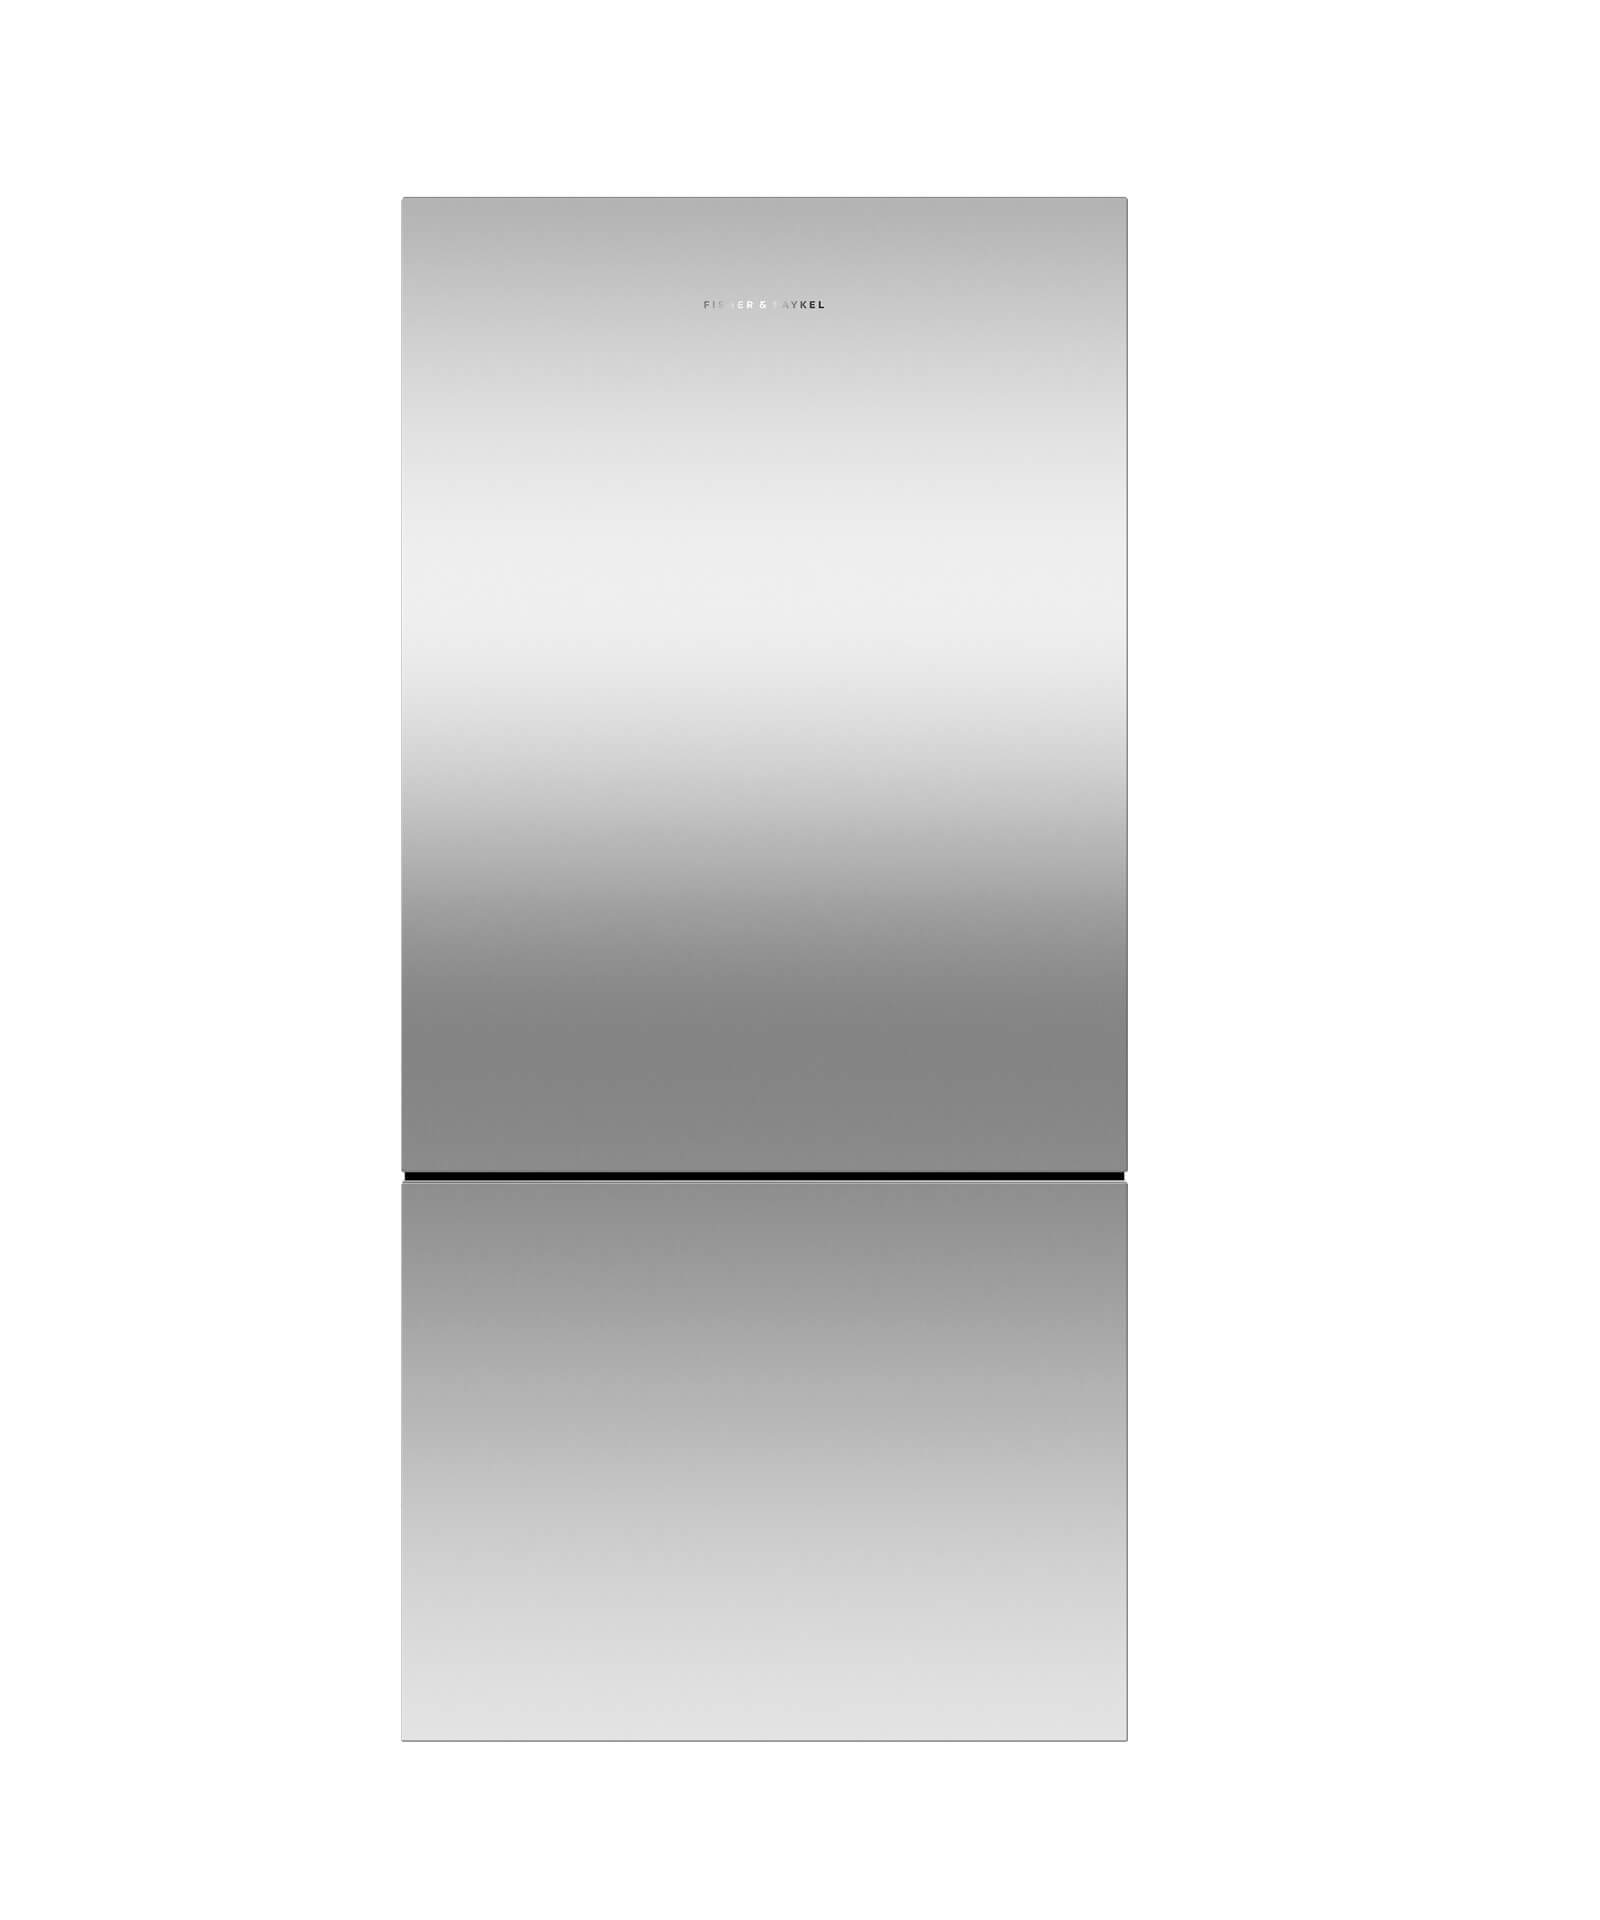 RF522BRPX6 - ActiveSmart™ Fridge -  790mm Bottom Freezer 473L - 25458